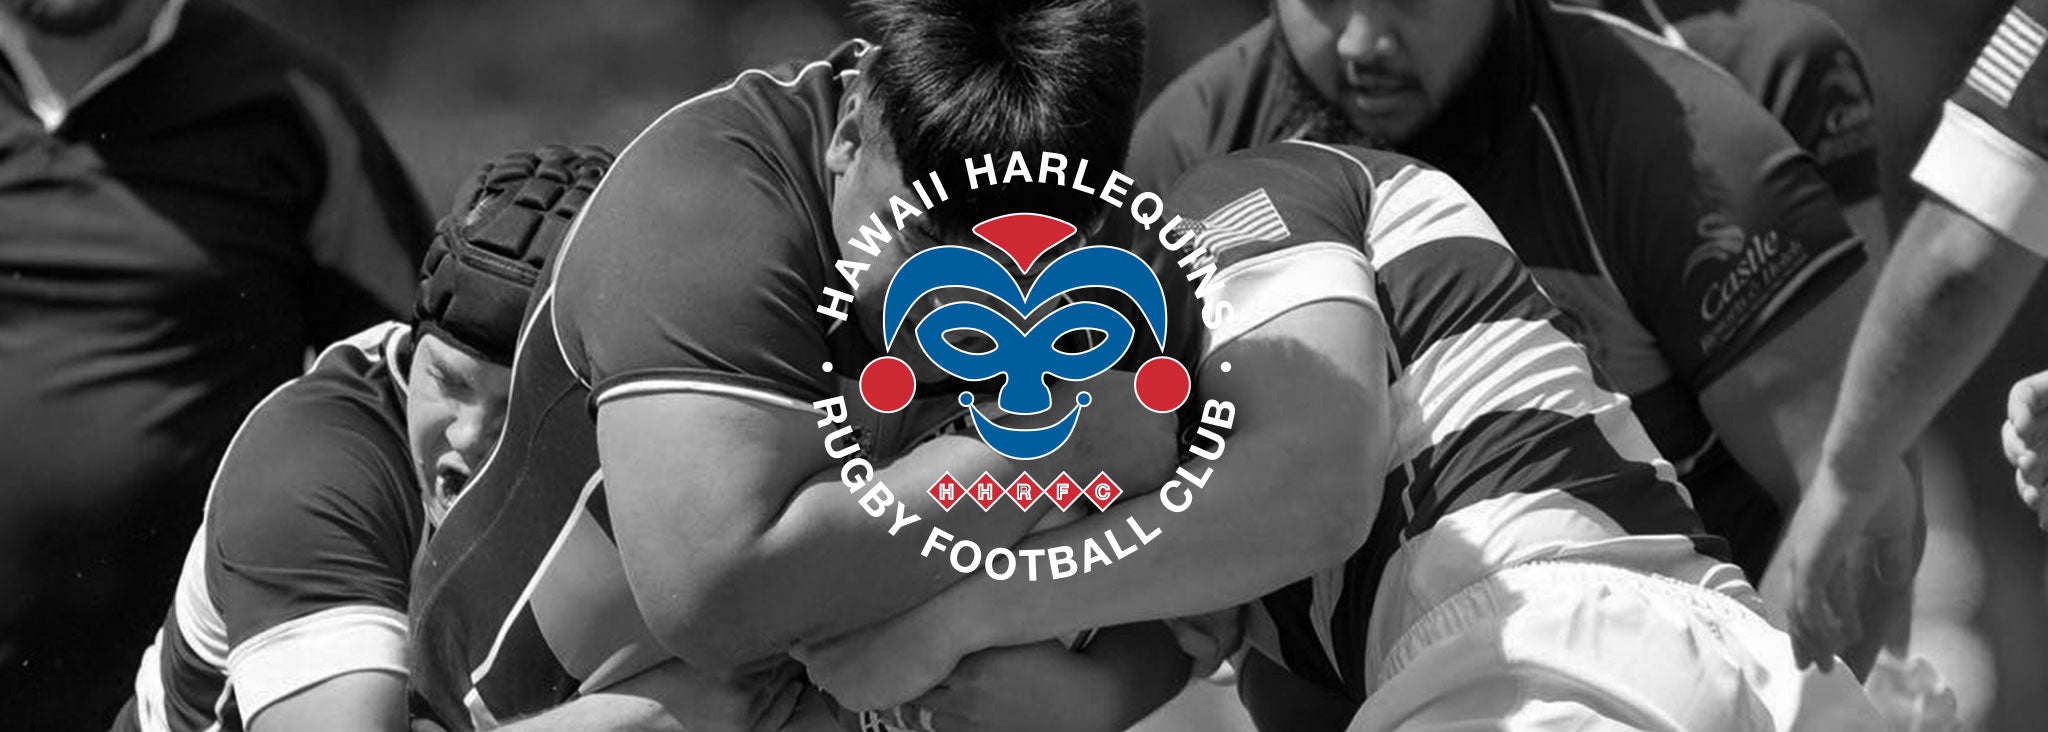 Hawaii Harlequins